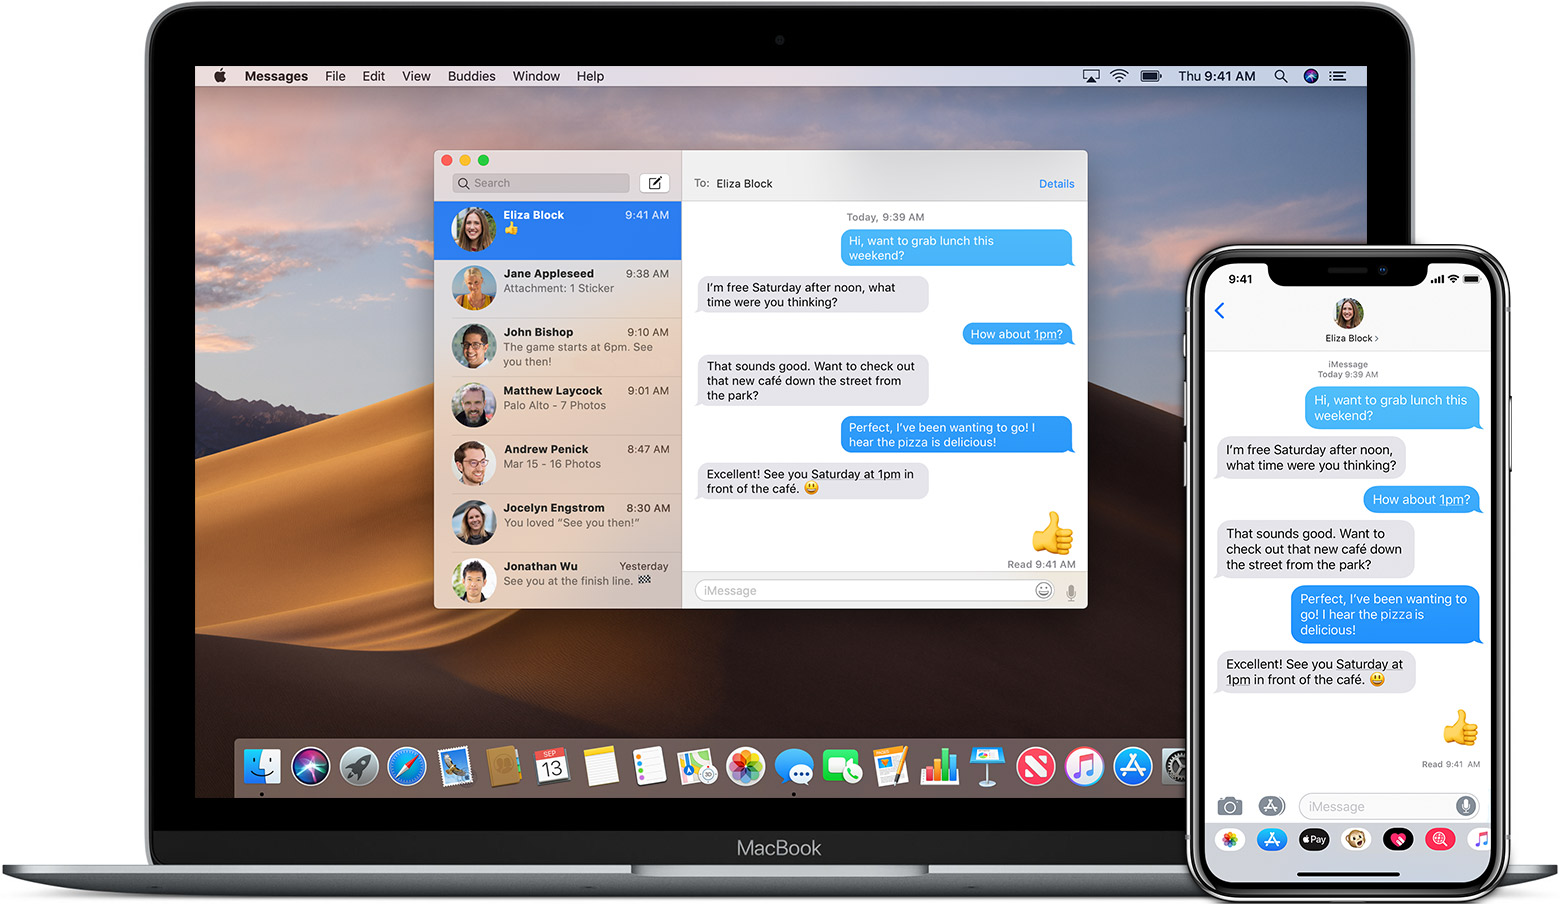 with messages for mac you can send unlimited messages to any mac iphone ipad or ipod touch that uses imessage apples secure messaging service